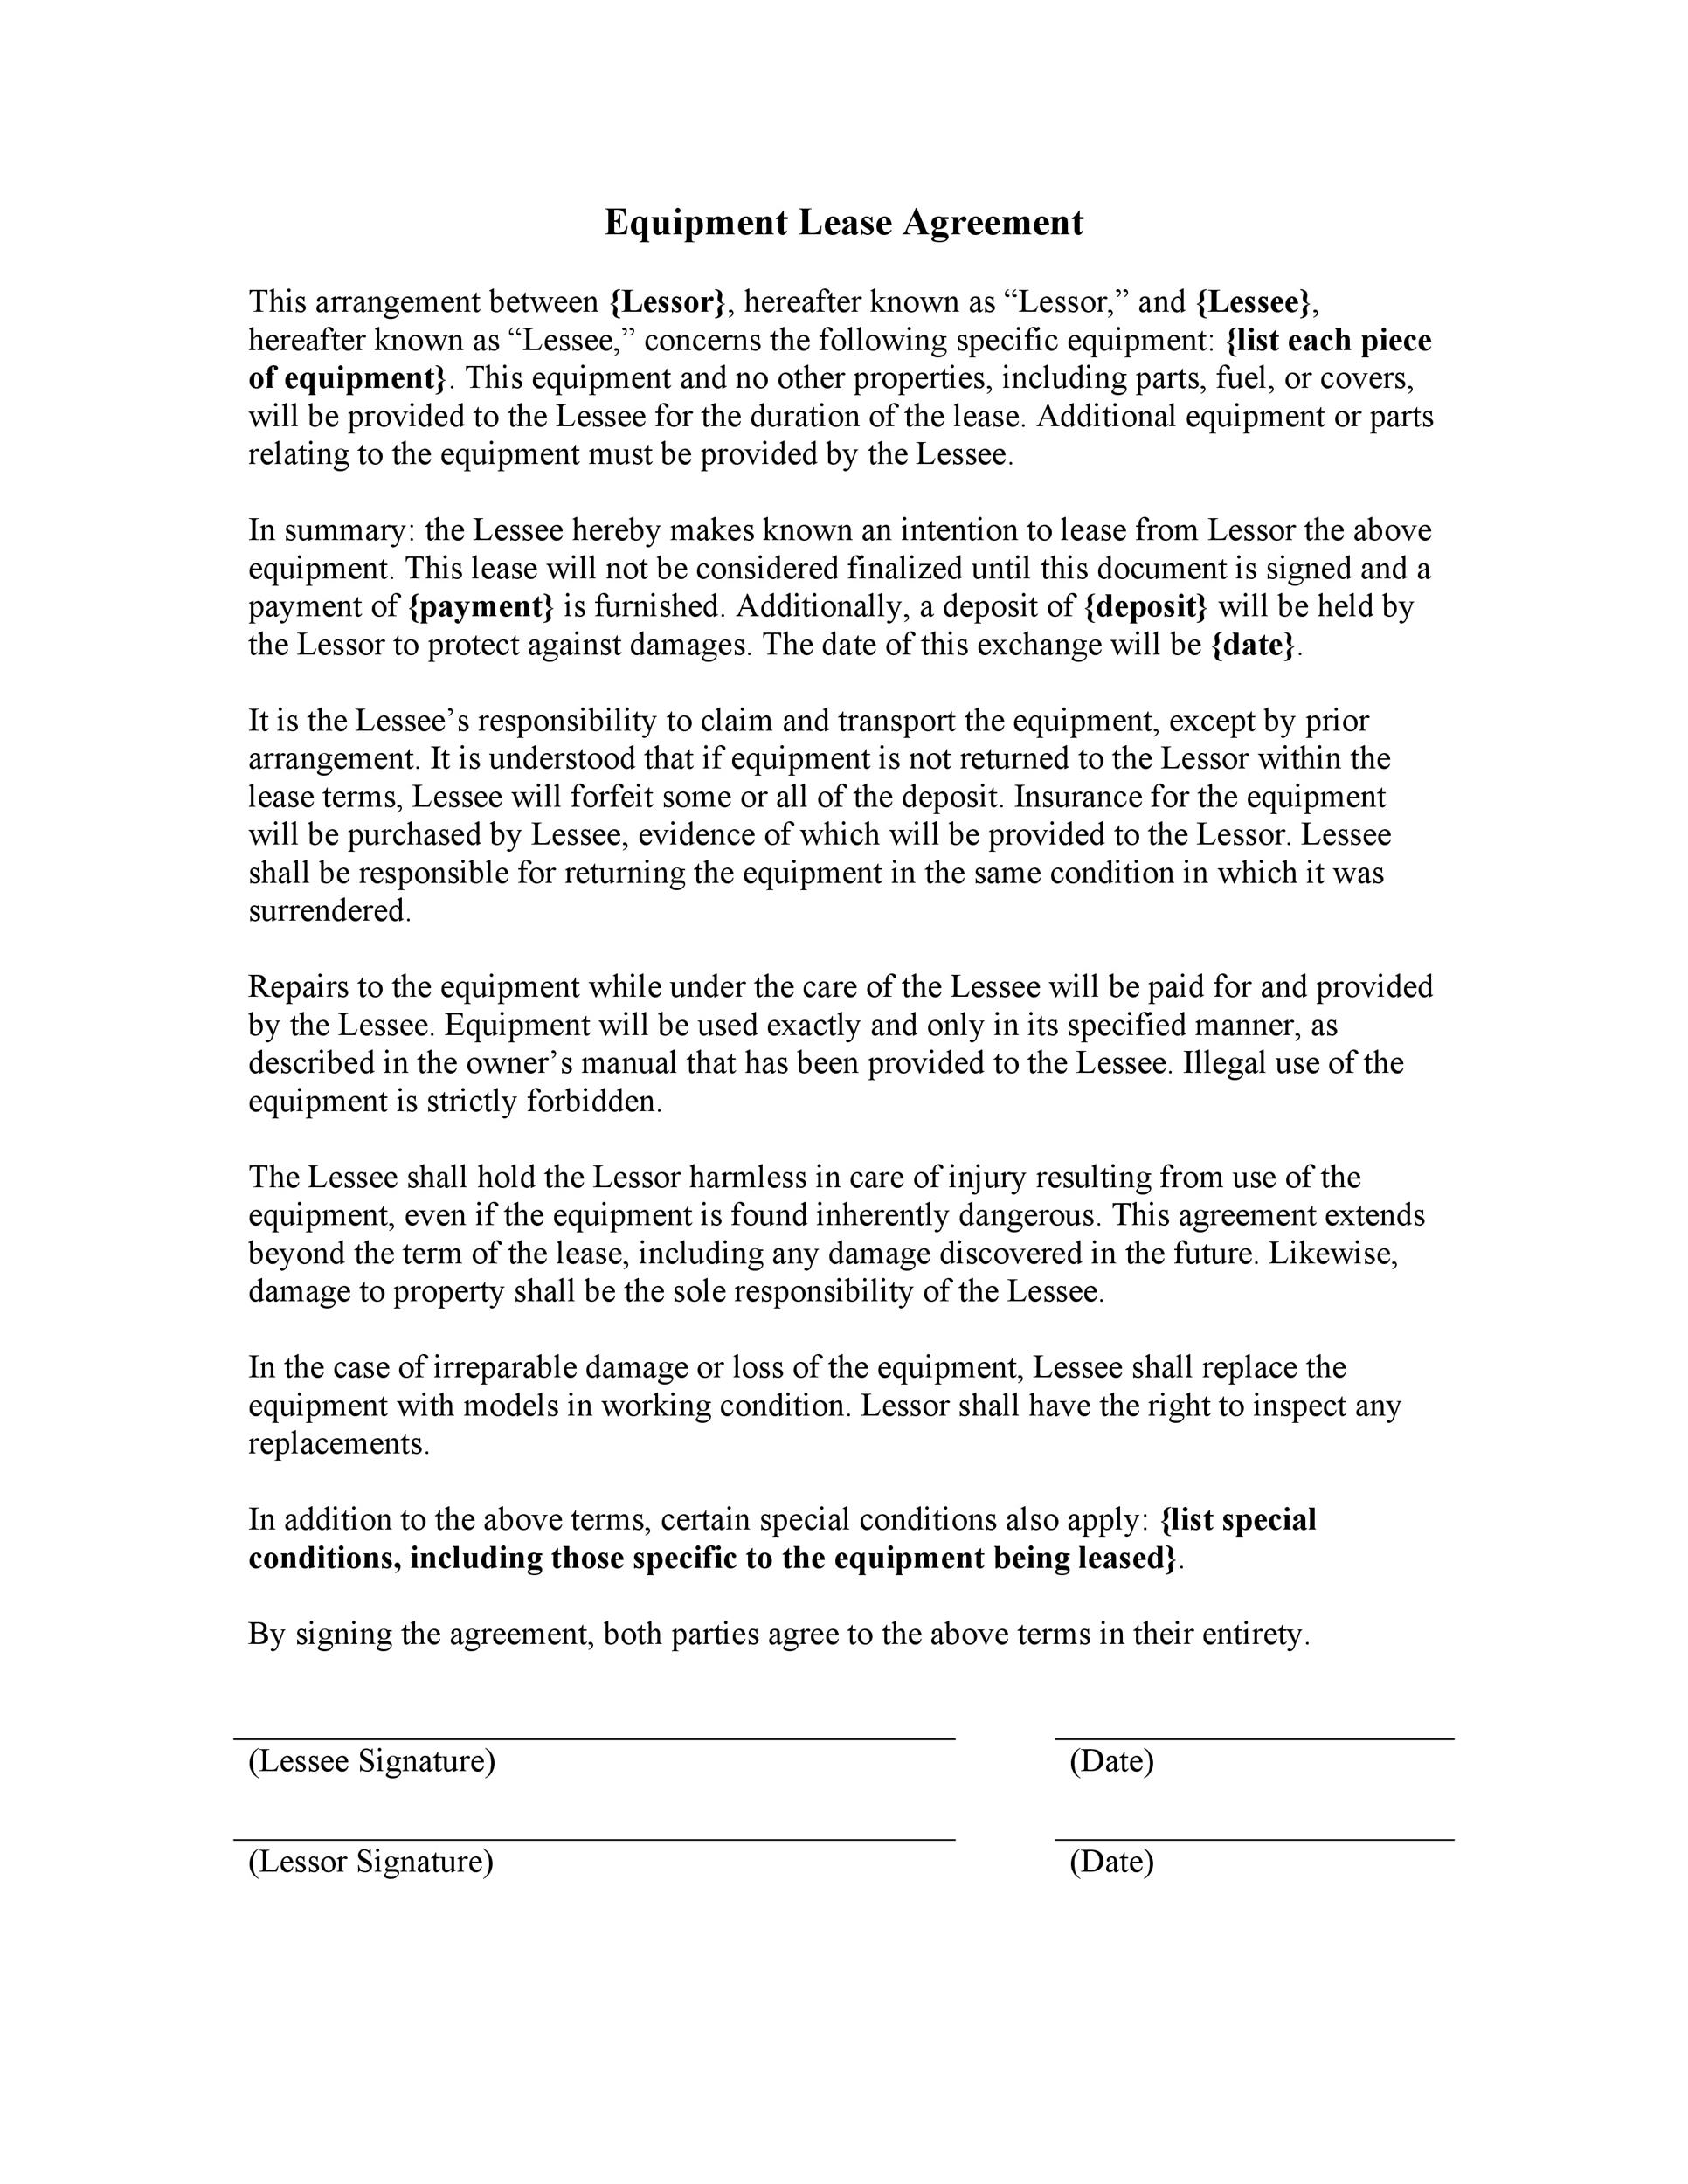 Free equipment lease agreement 32